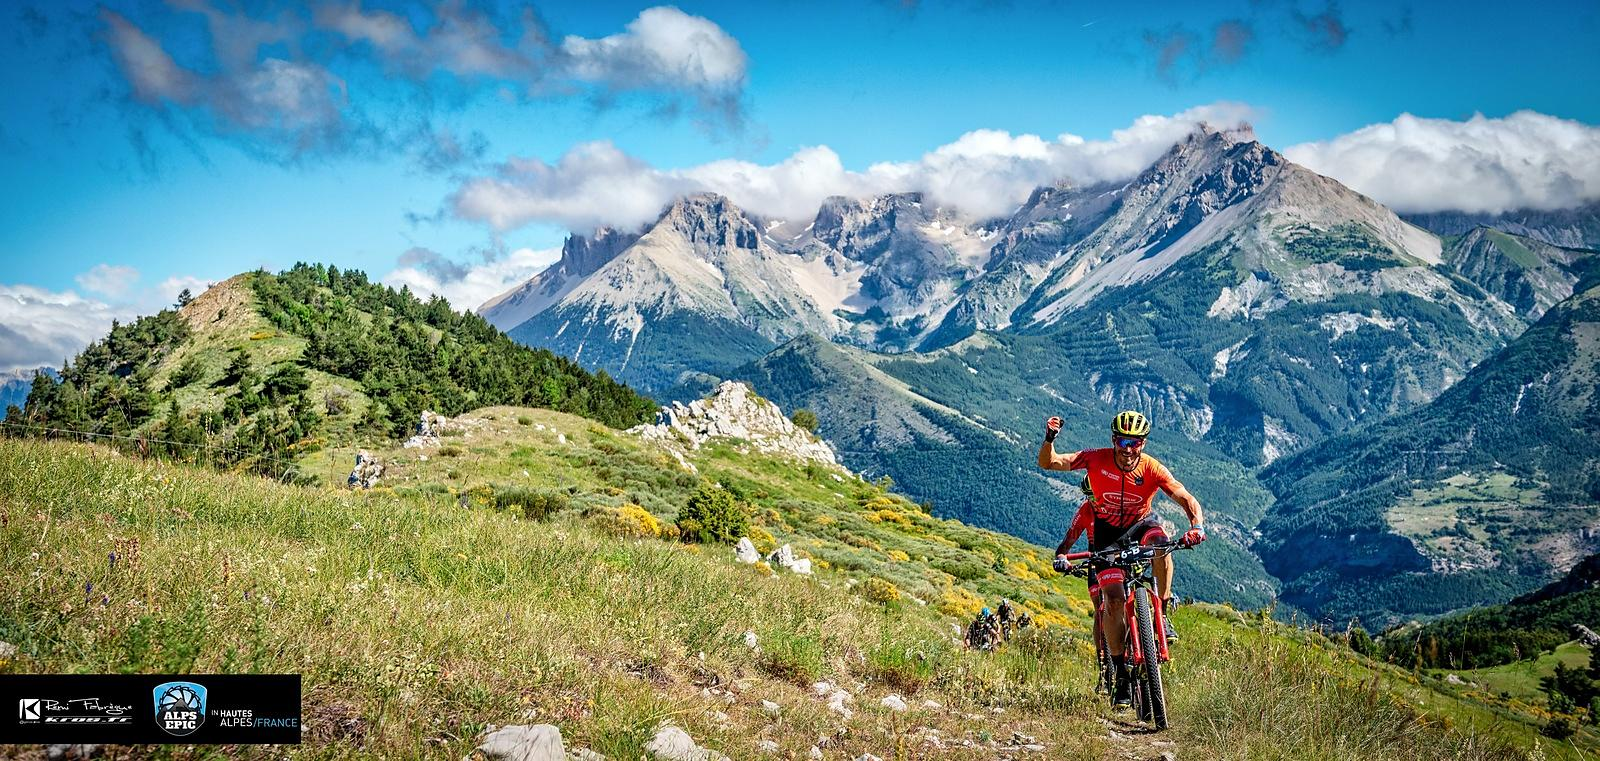 VendrediAlps_AgenceKros_RemiFABREGUE_(7_sur_19)